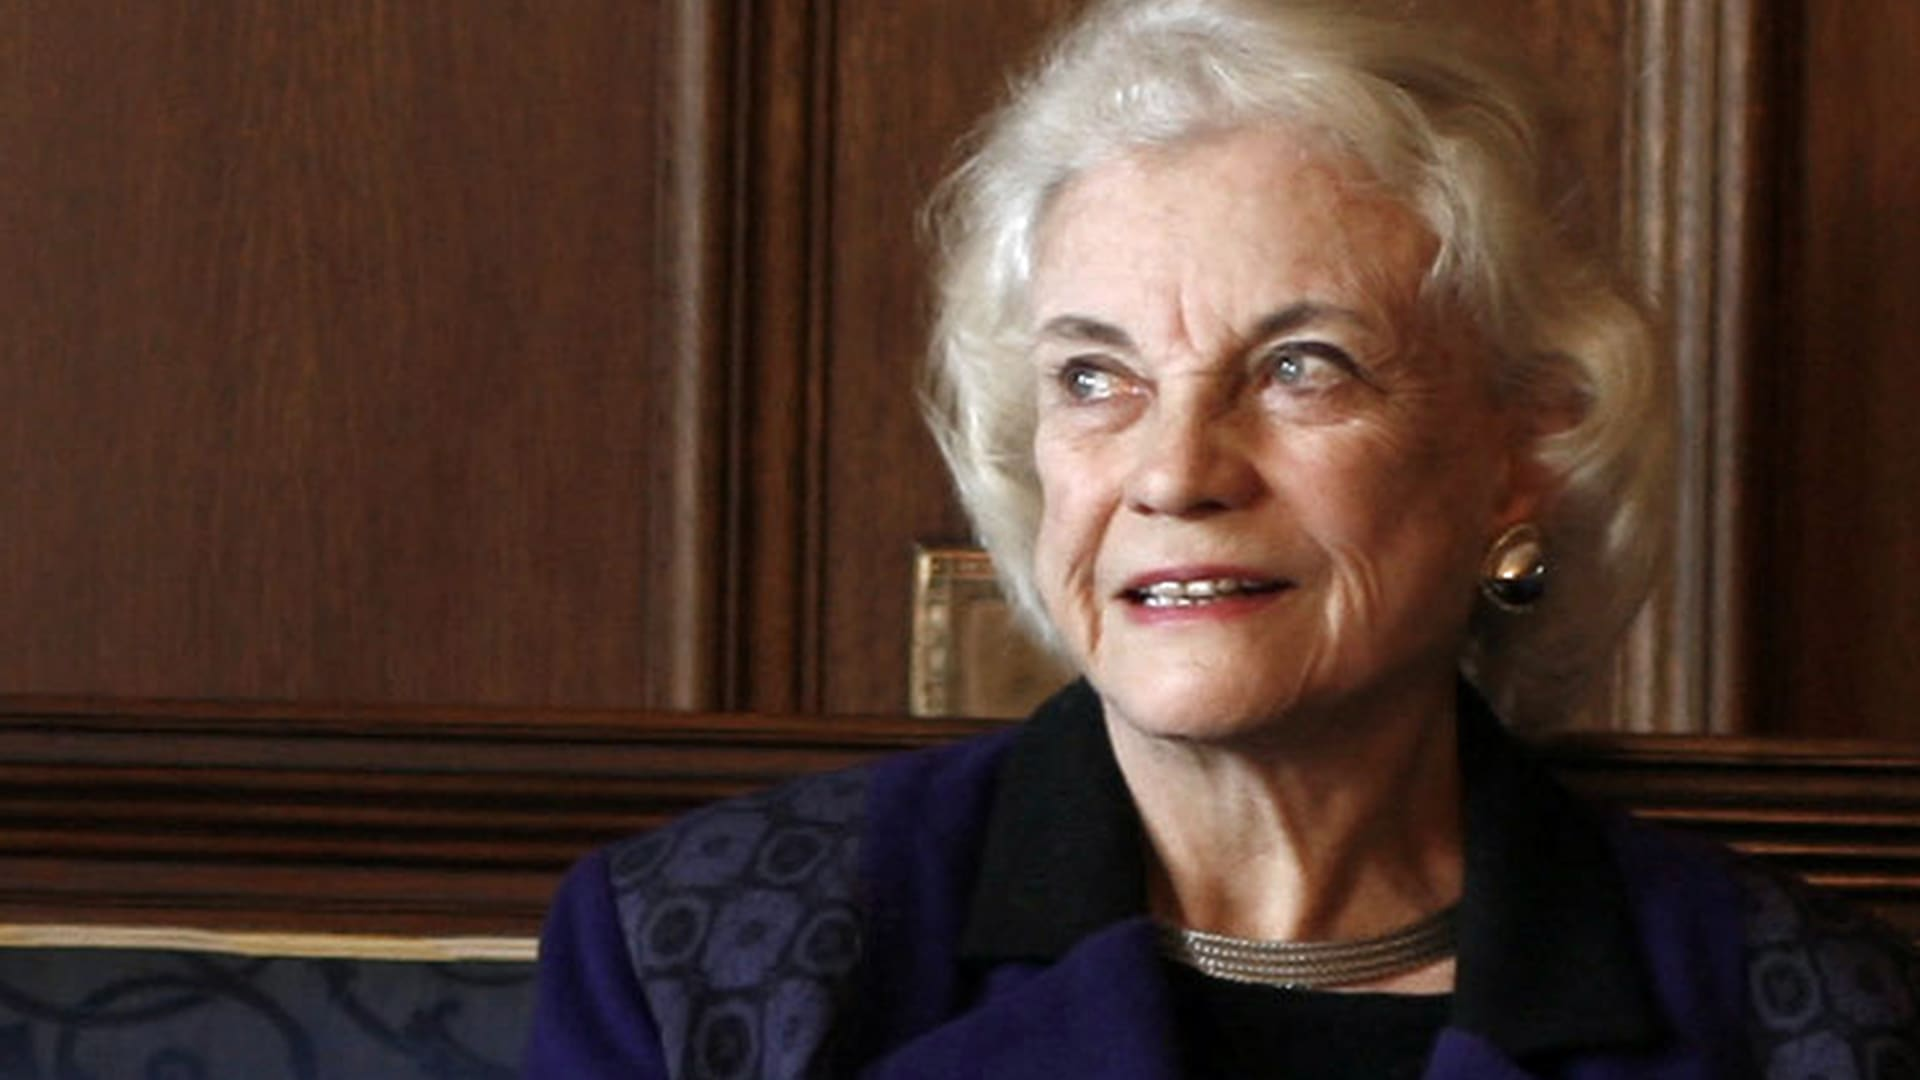 Sandra Day OConnor born March 26 1930 is a retired Associate Justice of the Supreme Court of the United States who served from her appointment in 1981 by Ronald